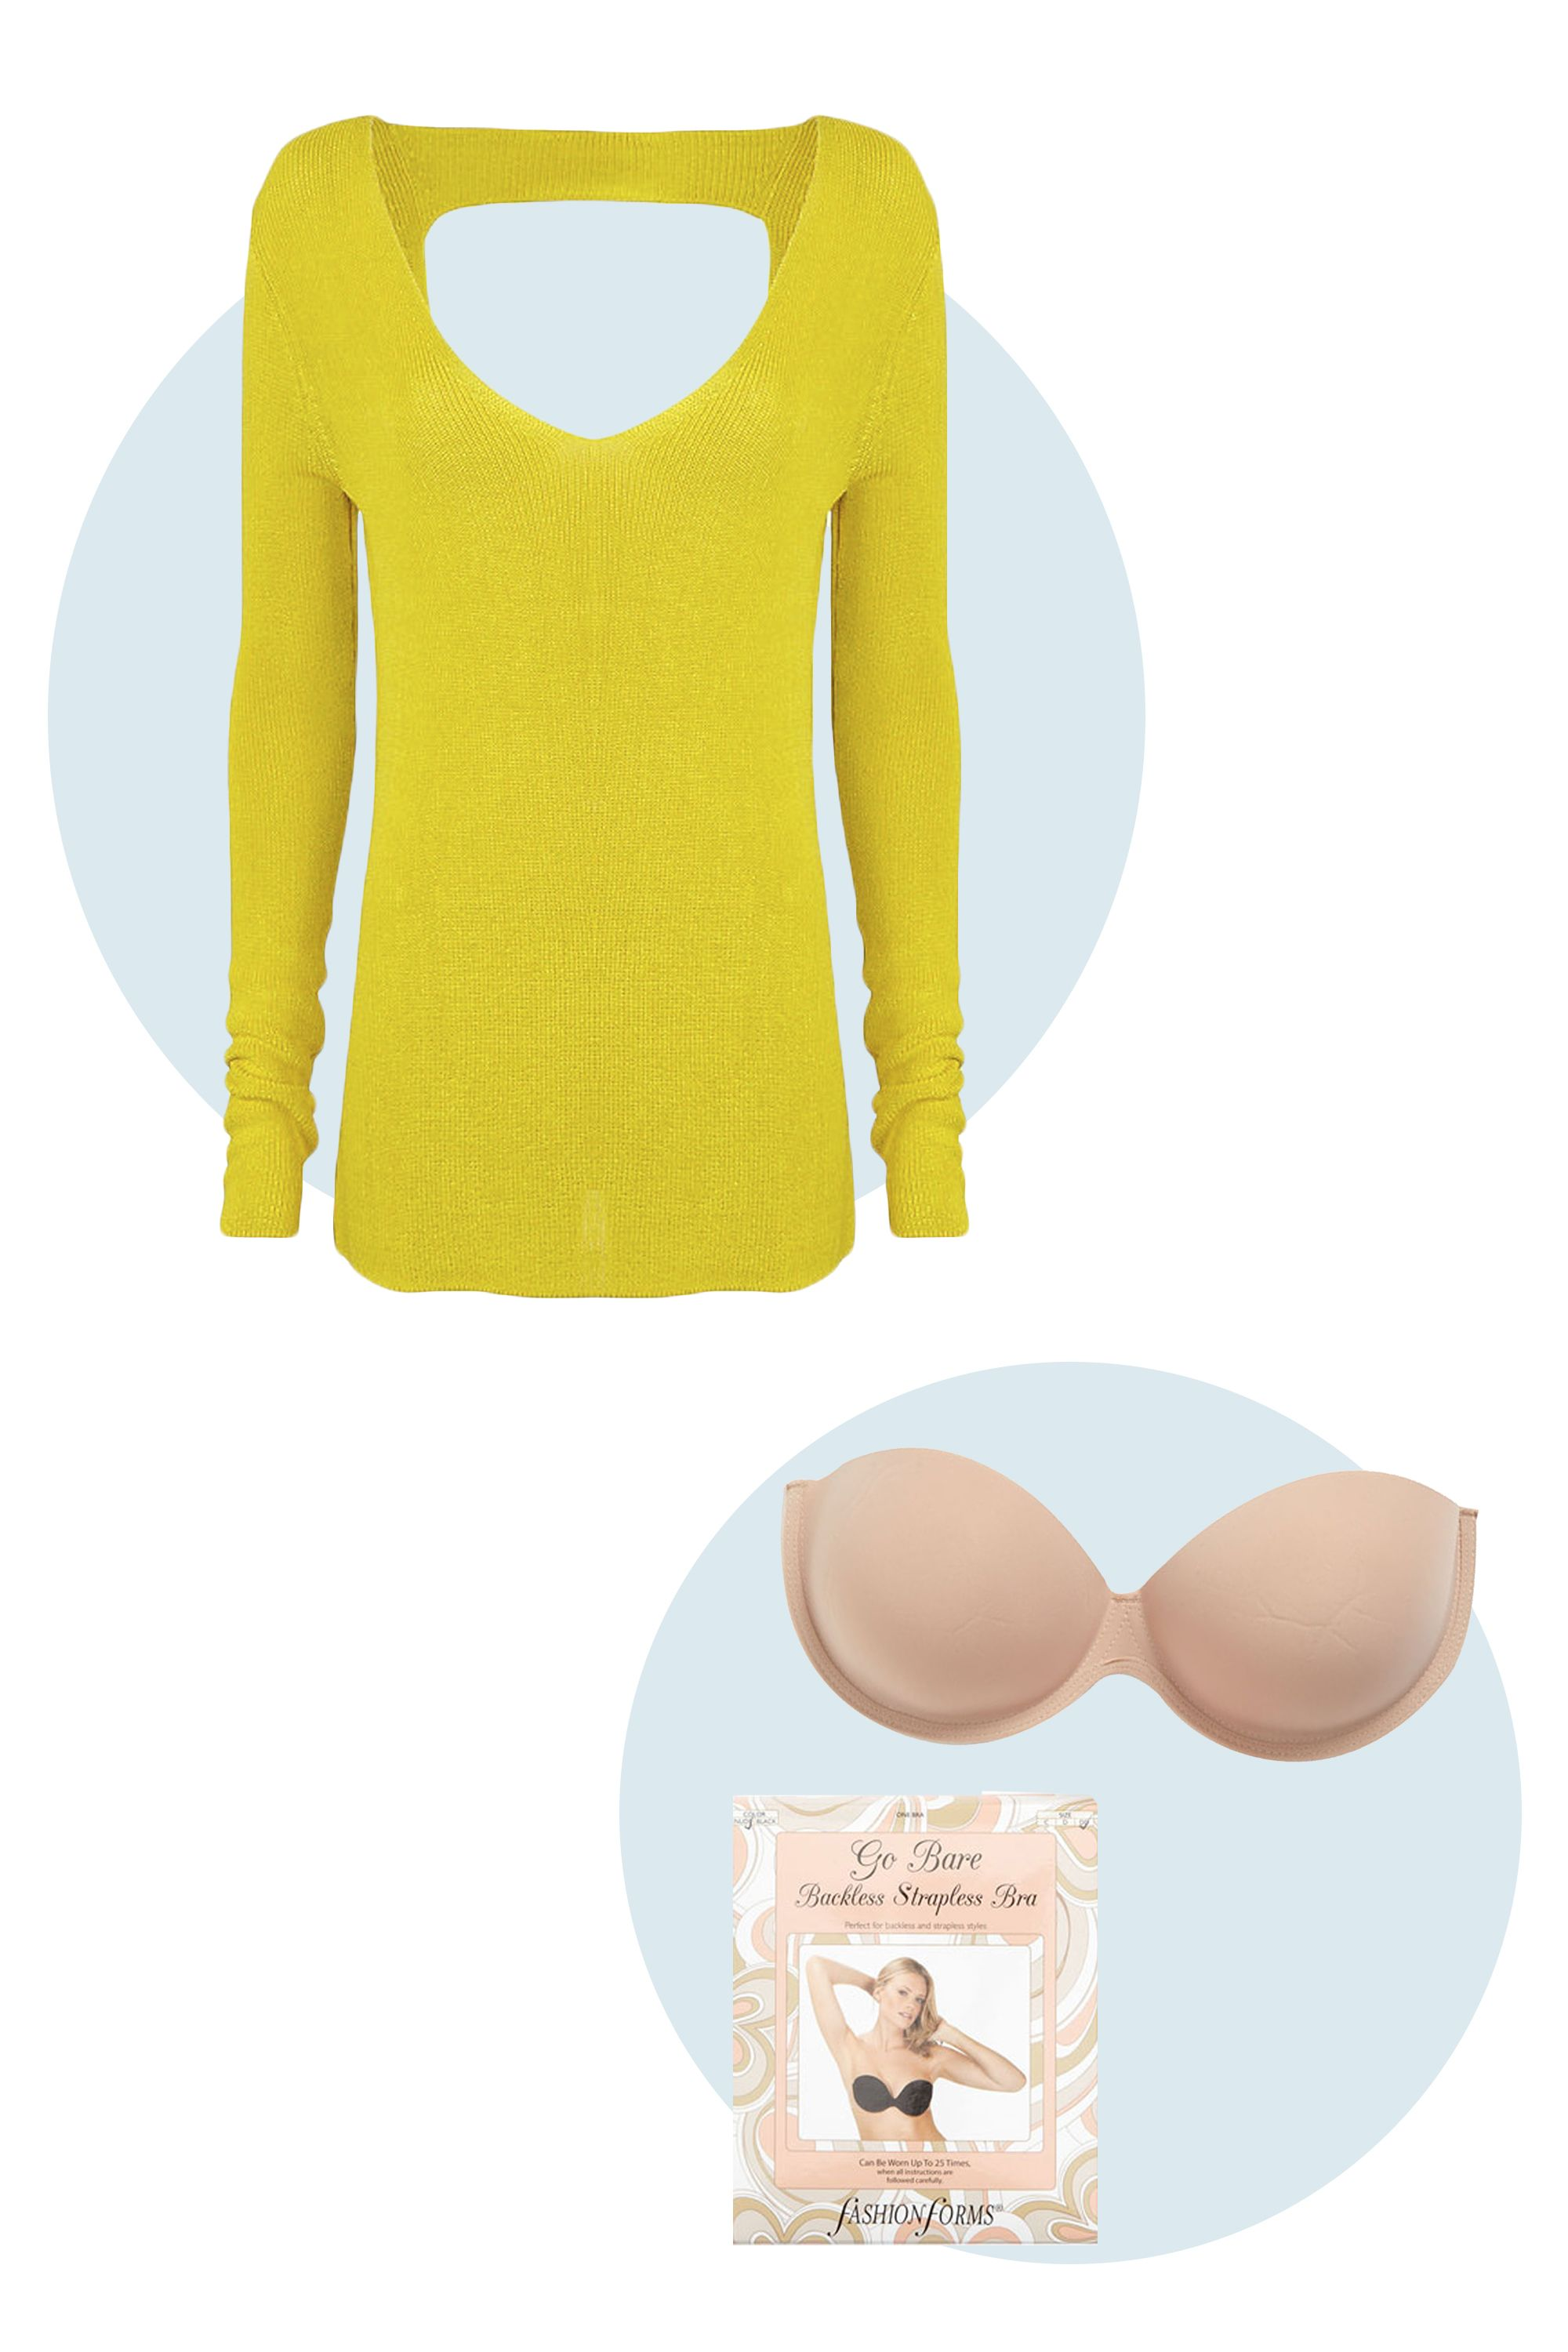 12 Chic Sweaters and the Bras to Wear With Them